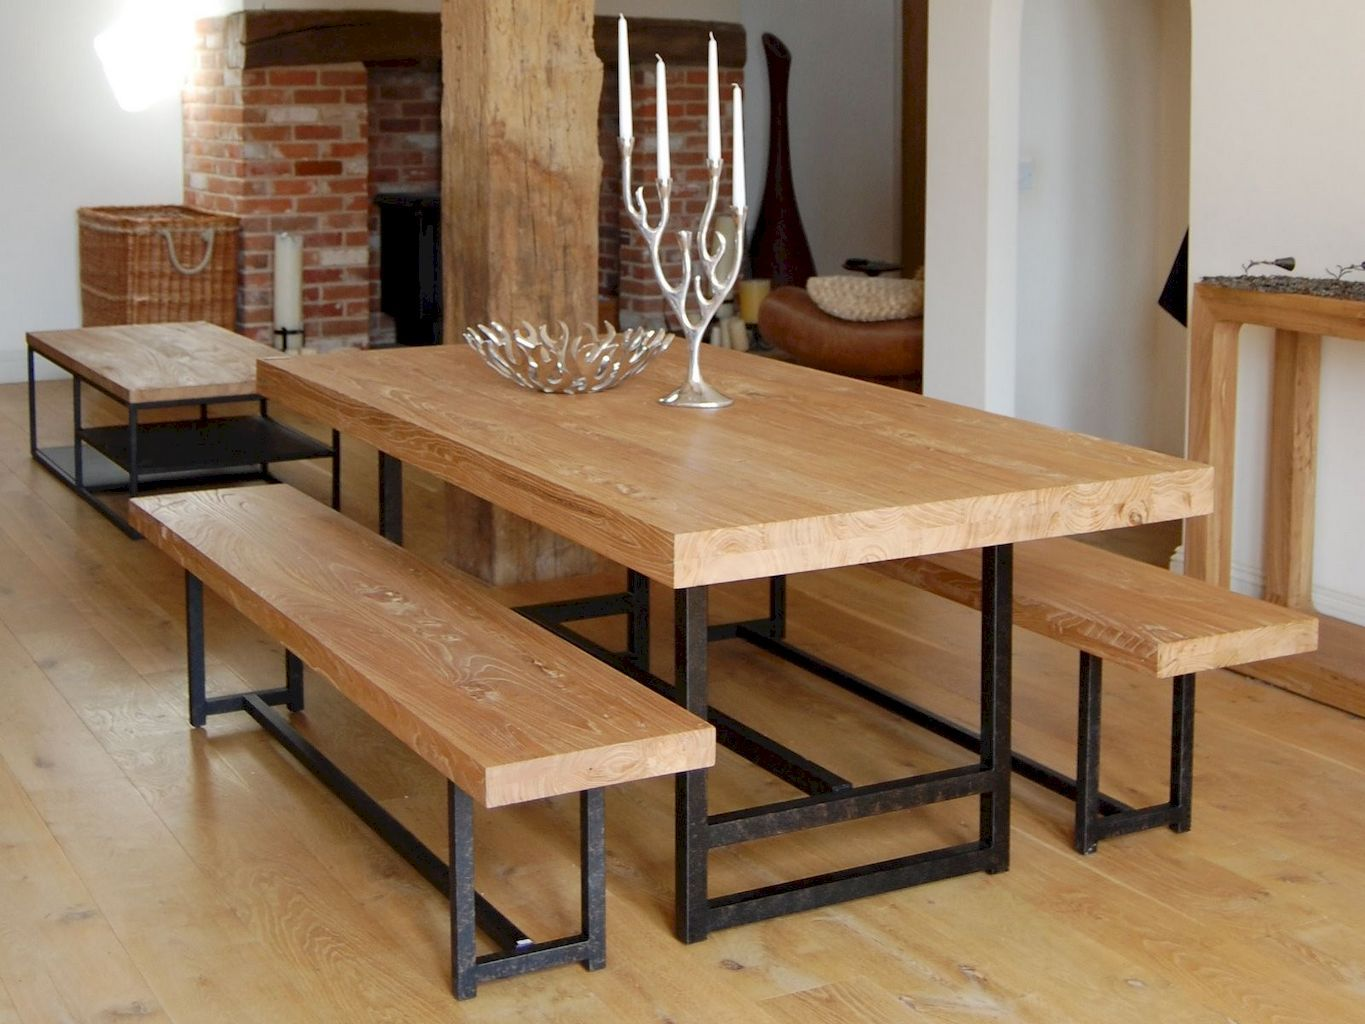 Pin By A On H O U S E Dining Table With Bench Wood Dining